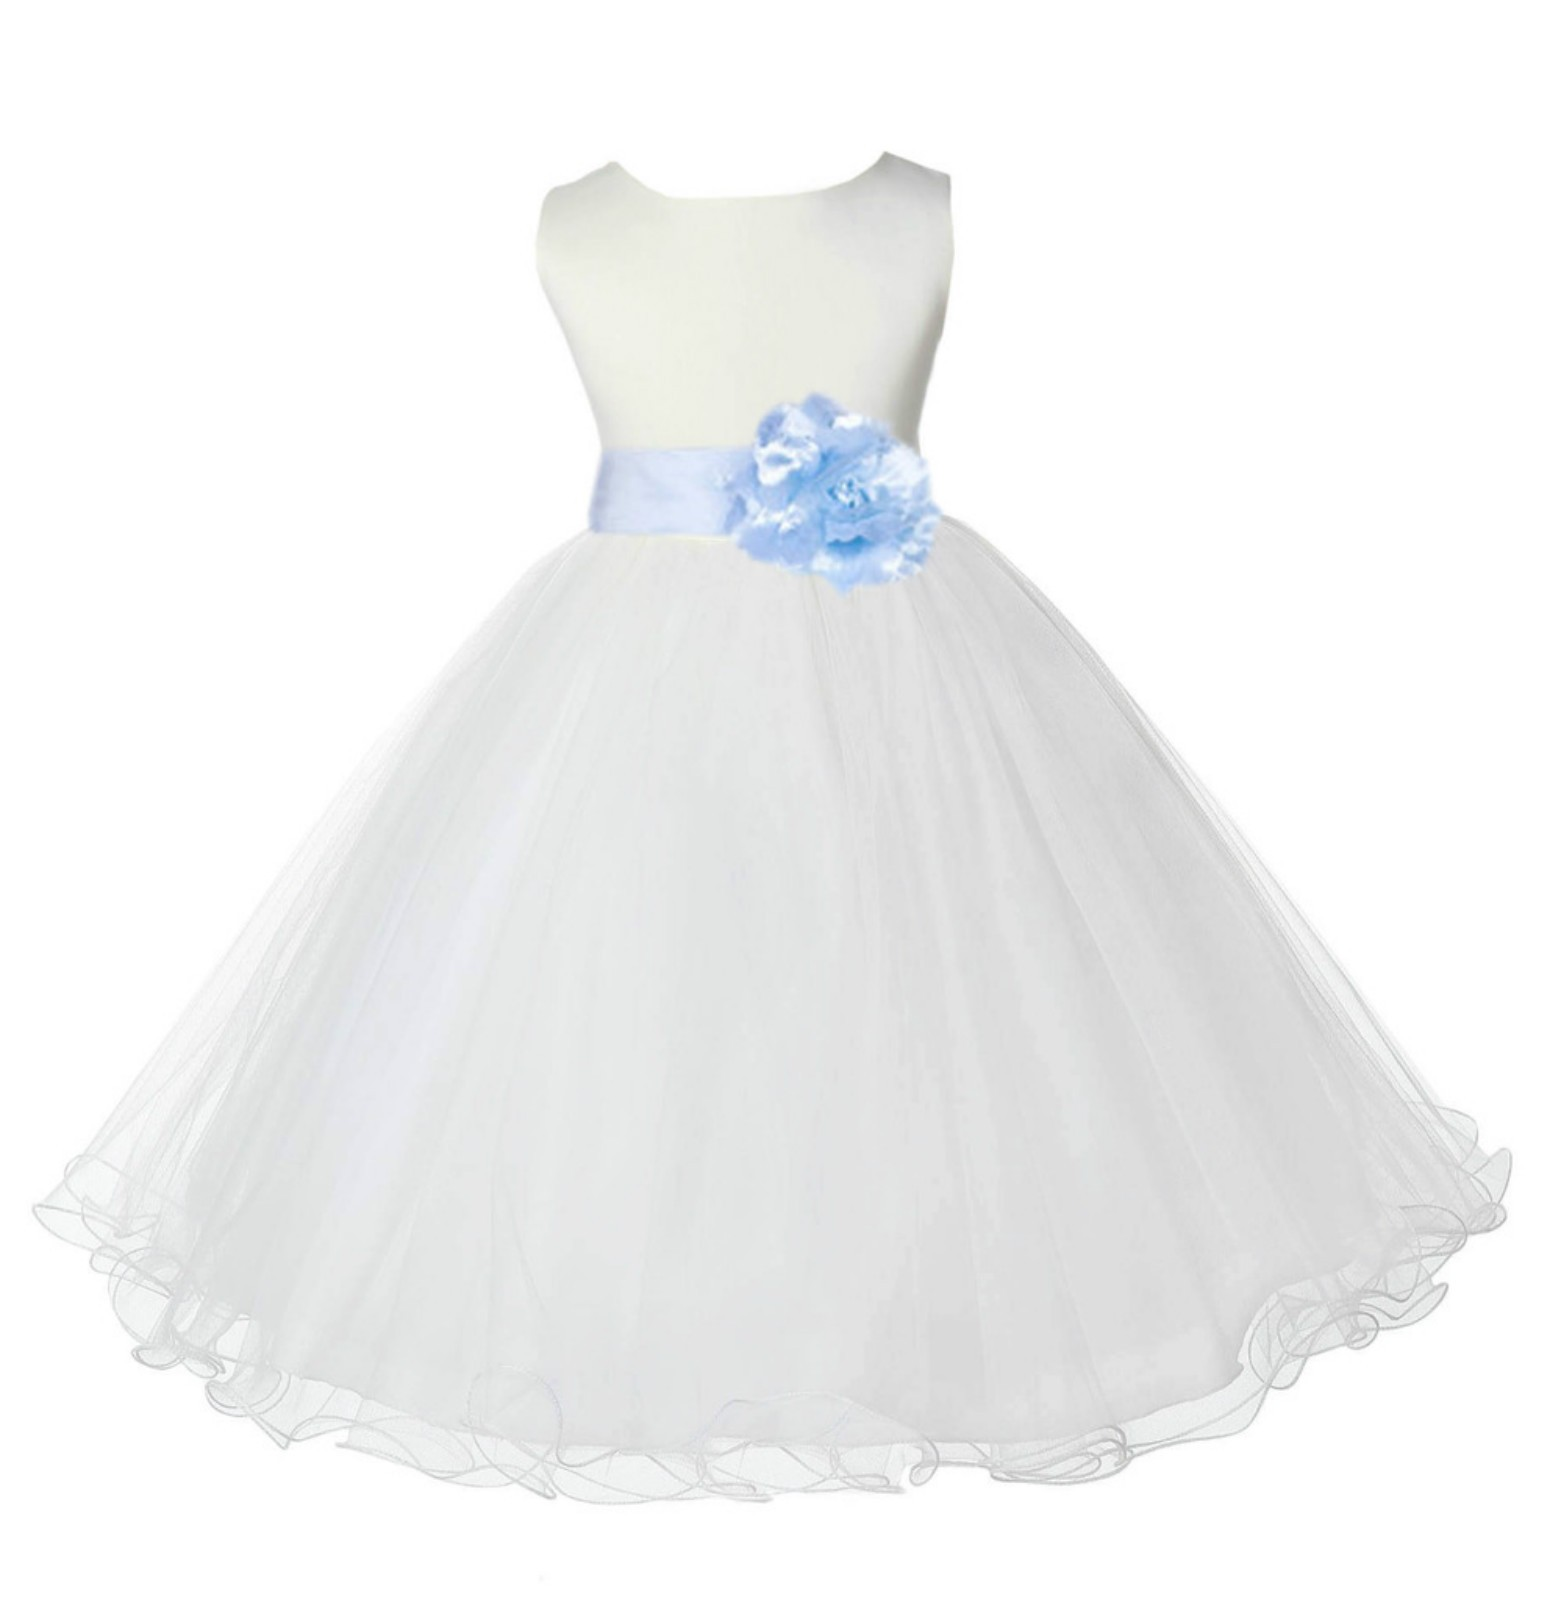 Ivory/Ice Blue Tulle Rattail Edge Flower Girl Dress Pageant Recital 829S